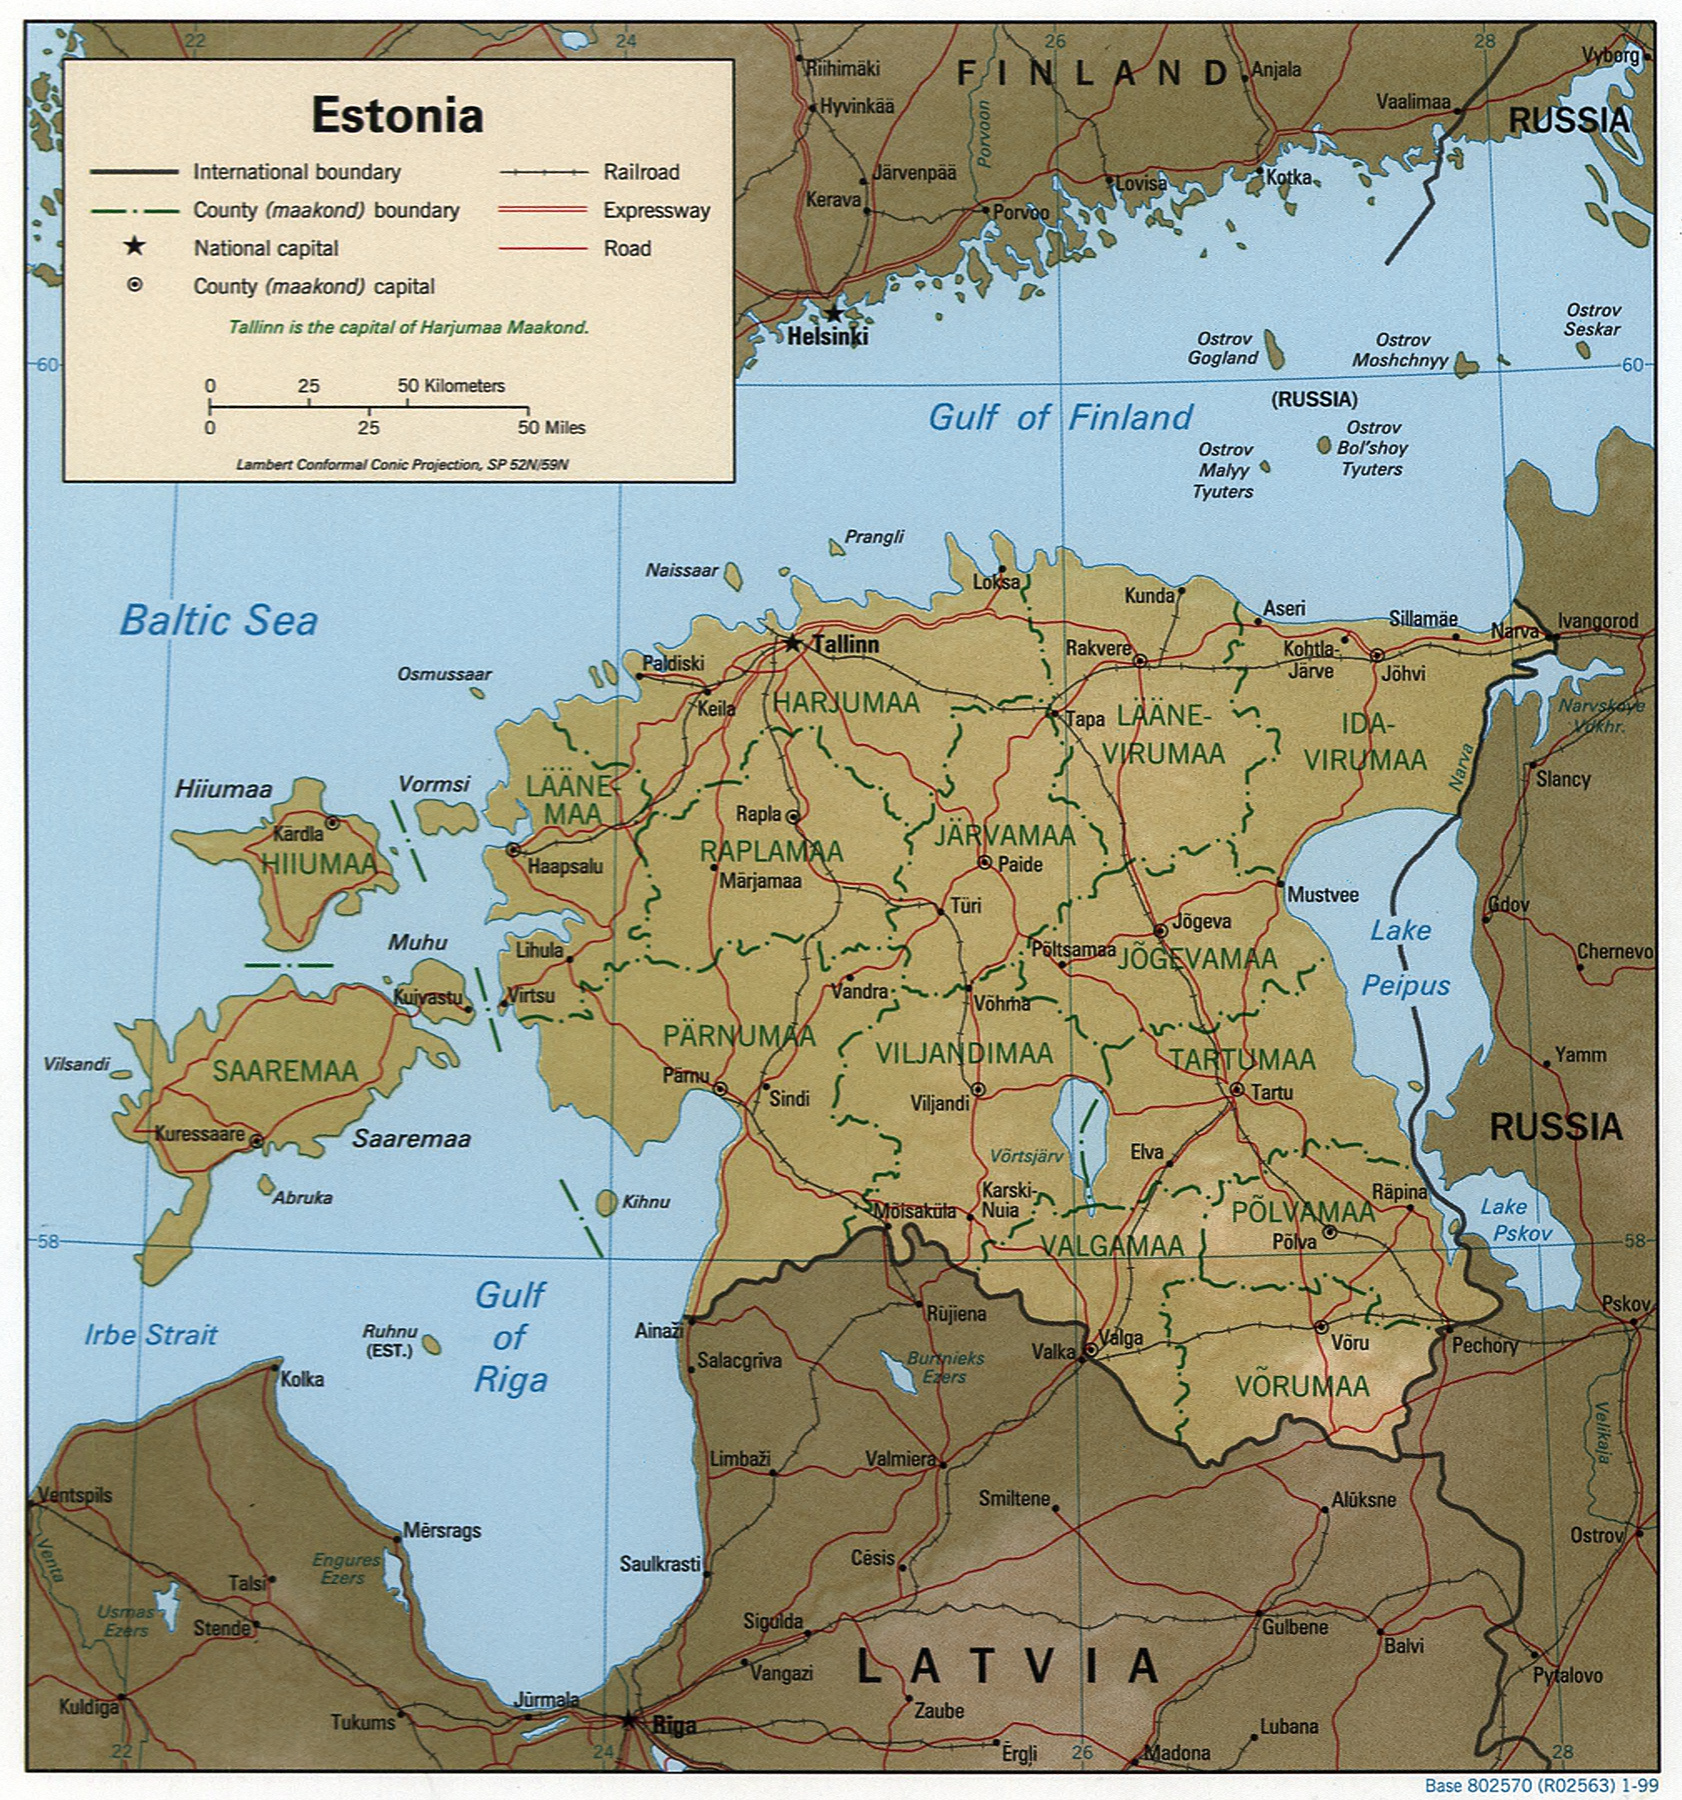 Atlas of Estonia - Wikimedia Commons